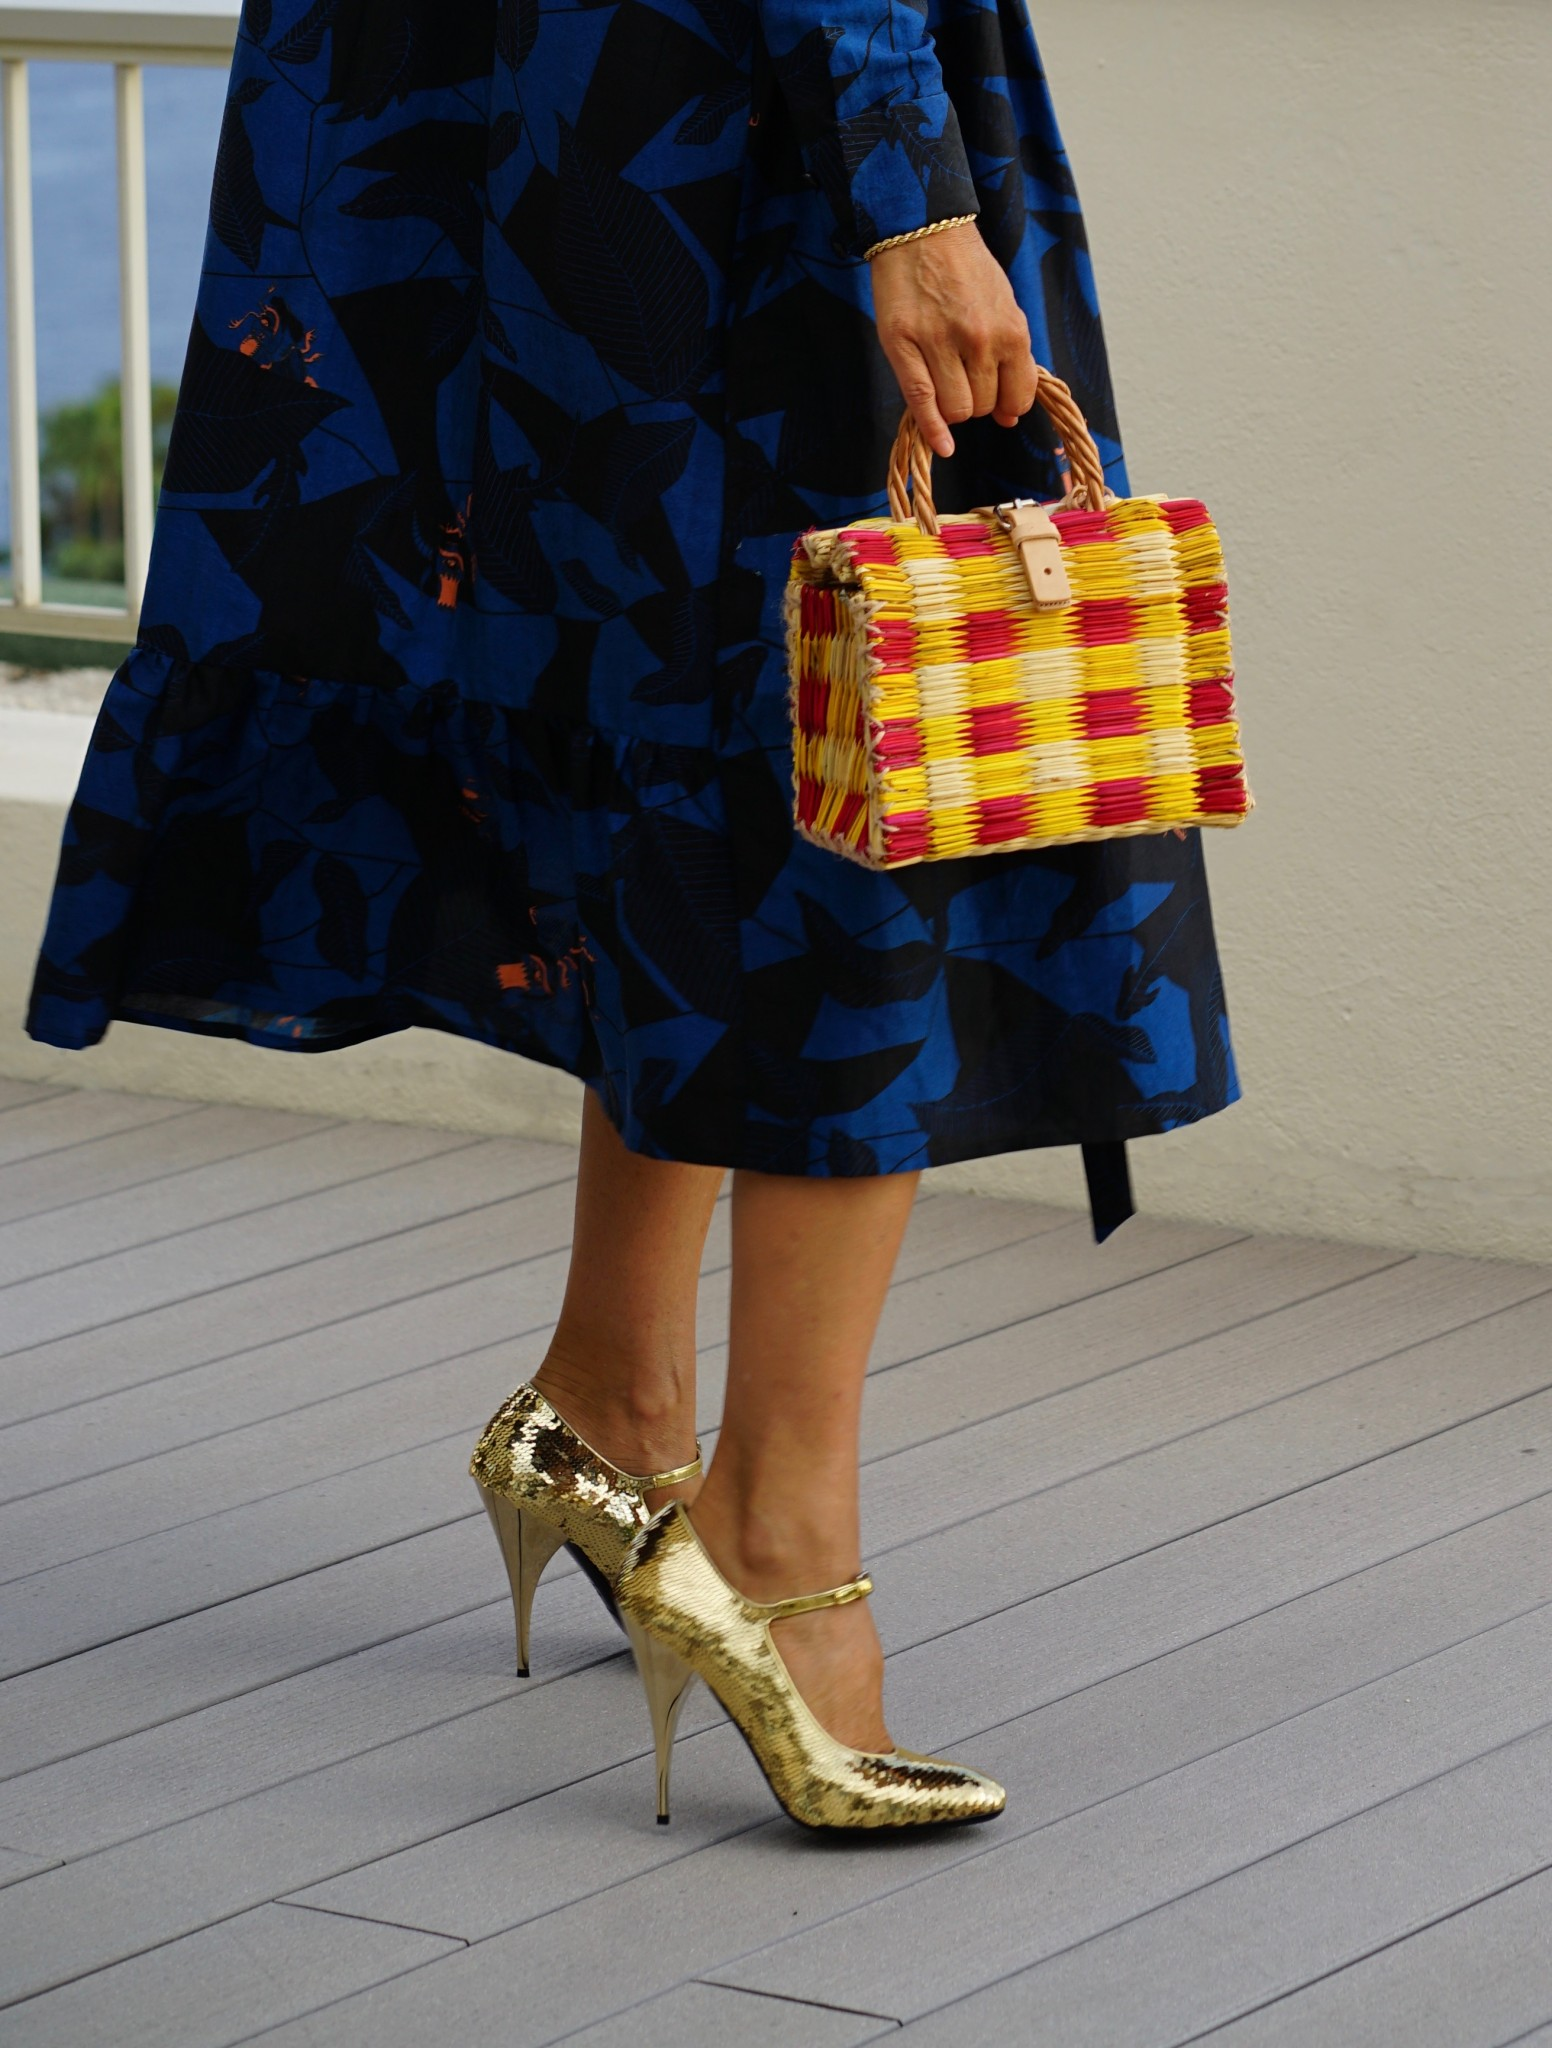 Dress by AnAnlondree, Bag by Toino Abel, Shoes by Miu Miu